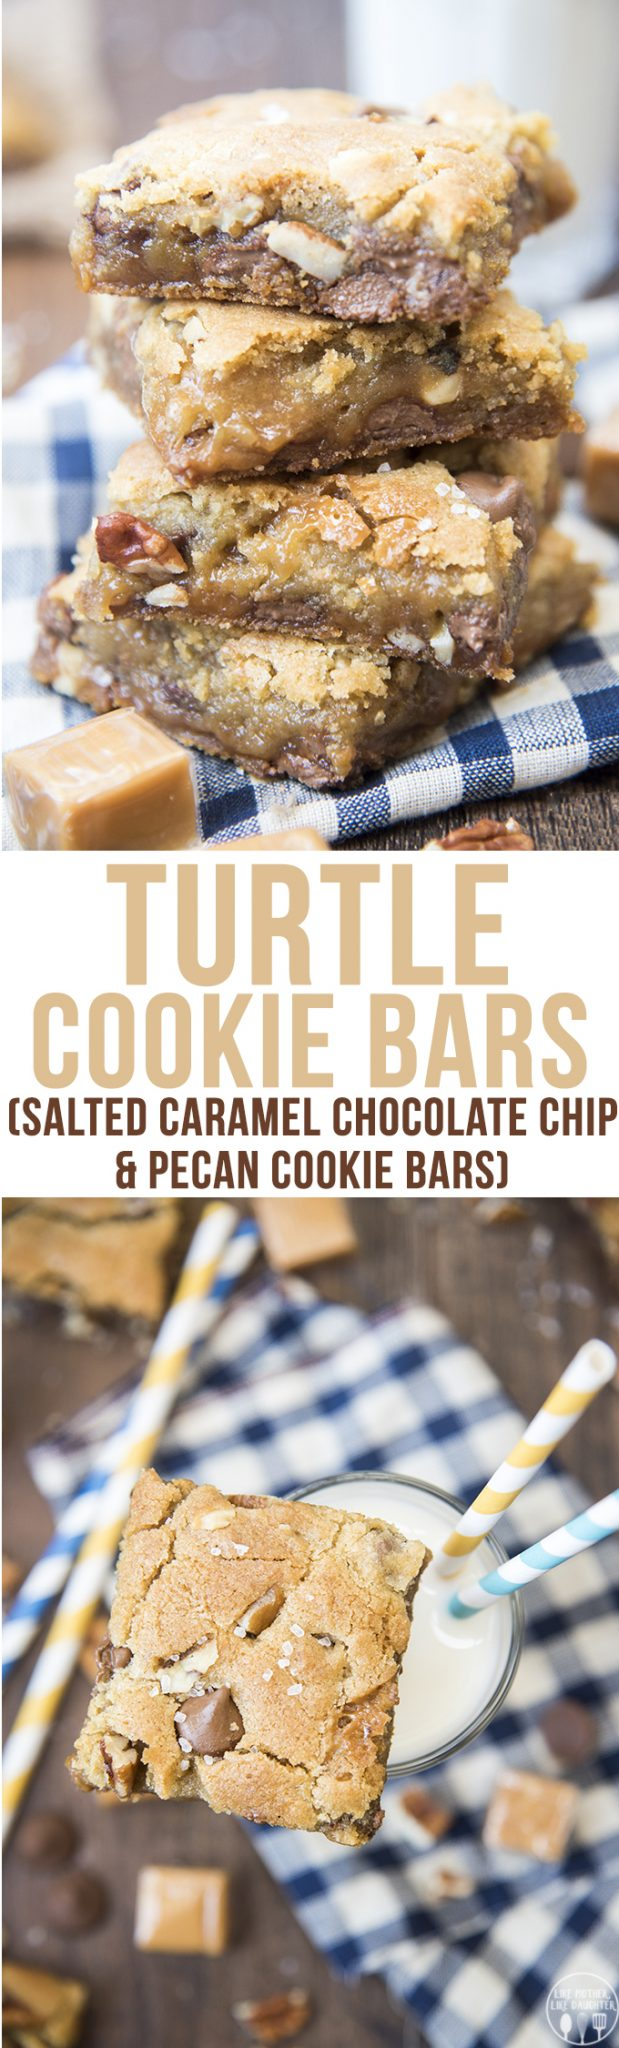 Turtle Cookie Bars - These cookie bars havetwolayers of chocolate chip pecan filled cookie, full of gooey caramel in the middle. Everyone will love these!